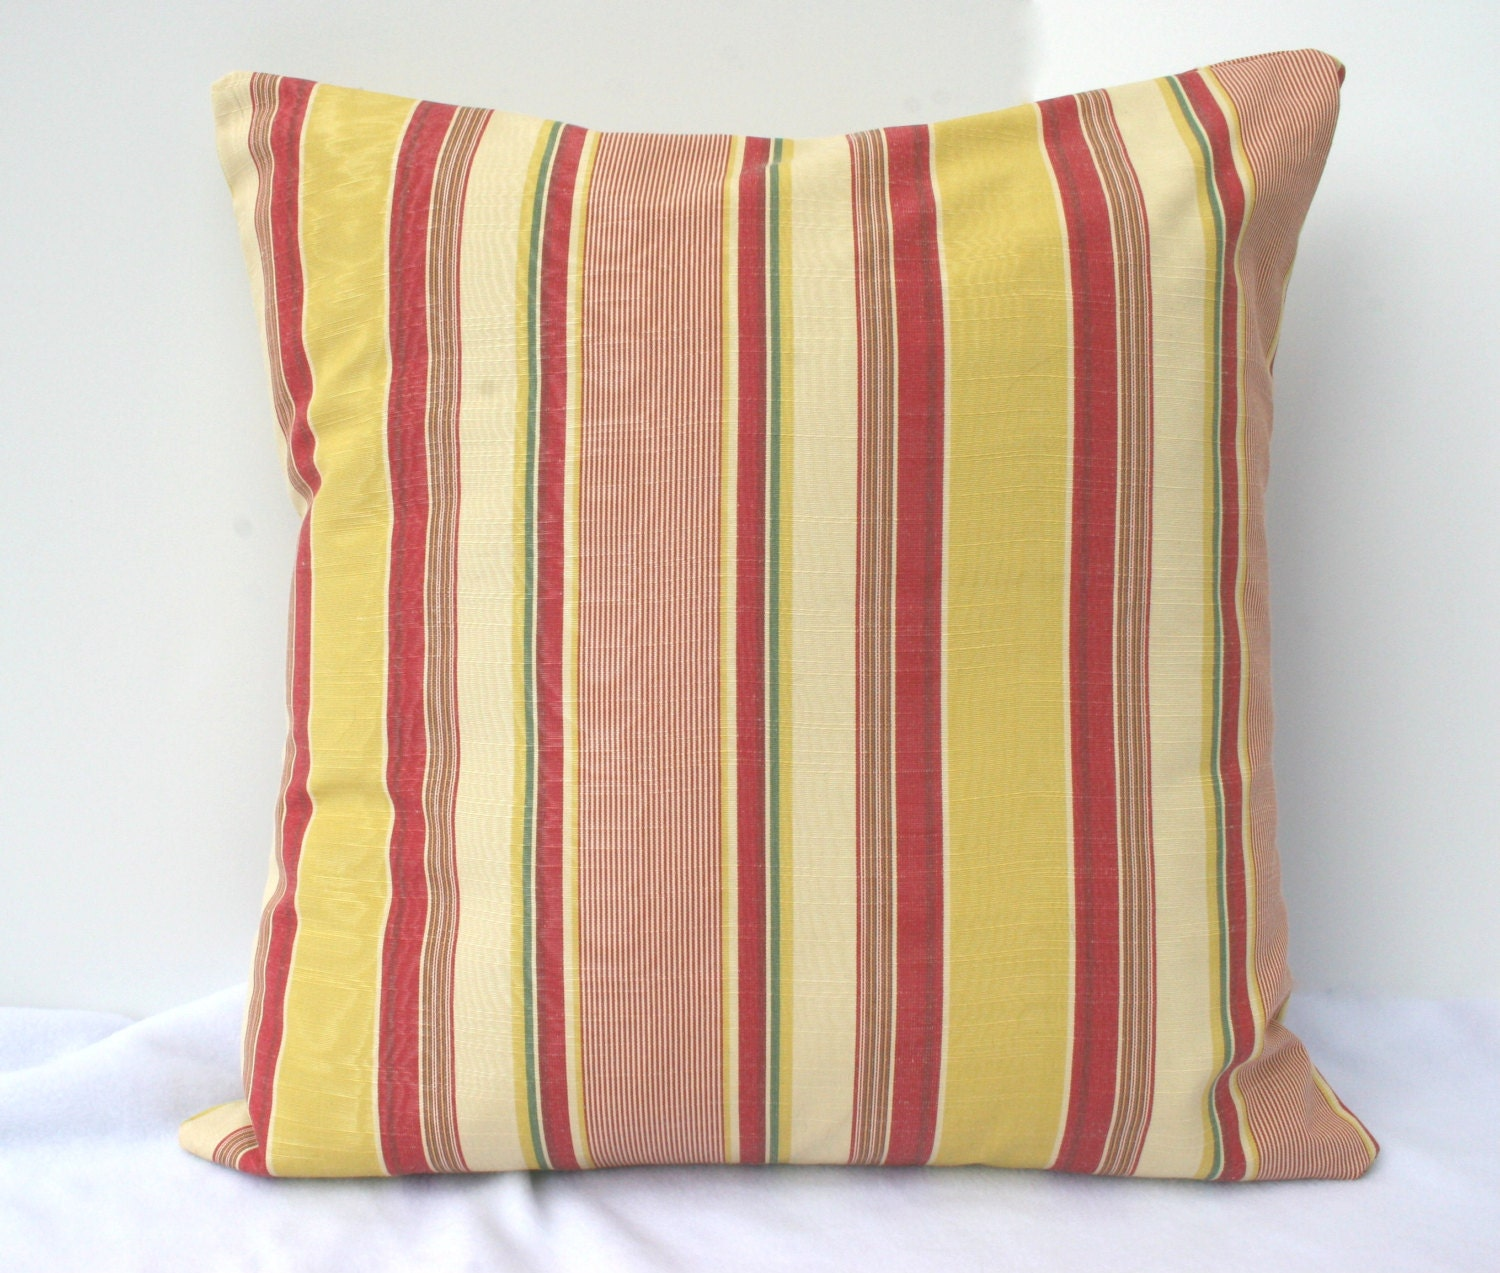 Items similar to Yellow and Red Striped Decorative Pillow Cover on Etsy